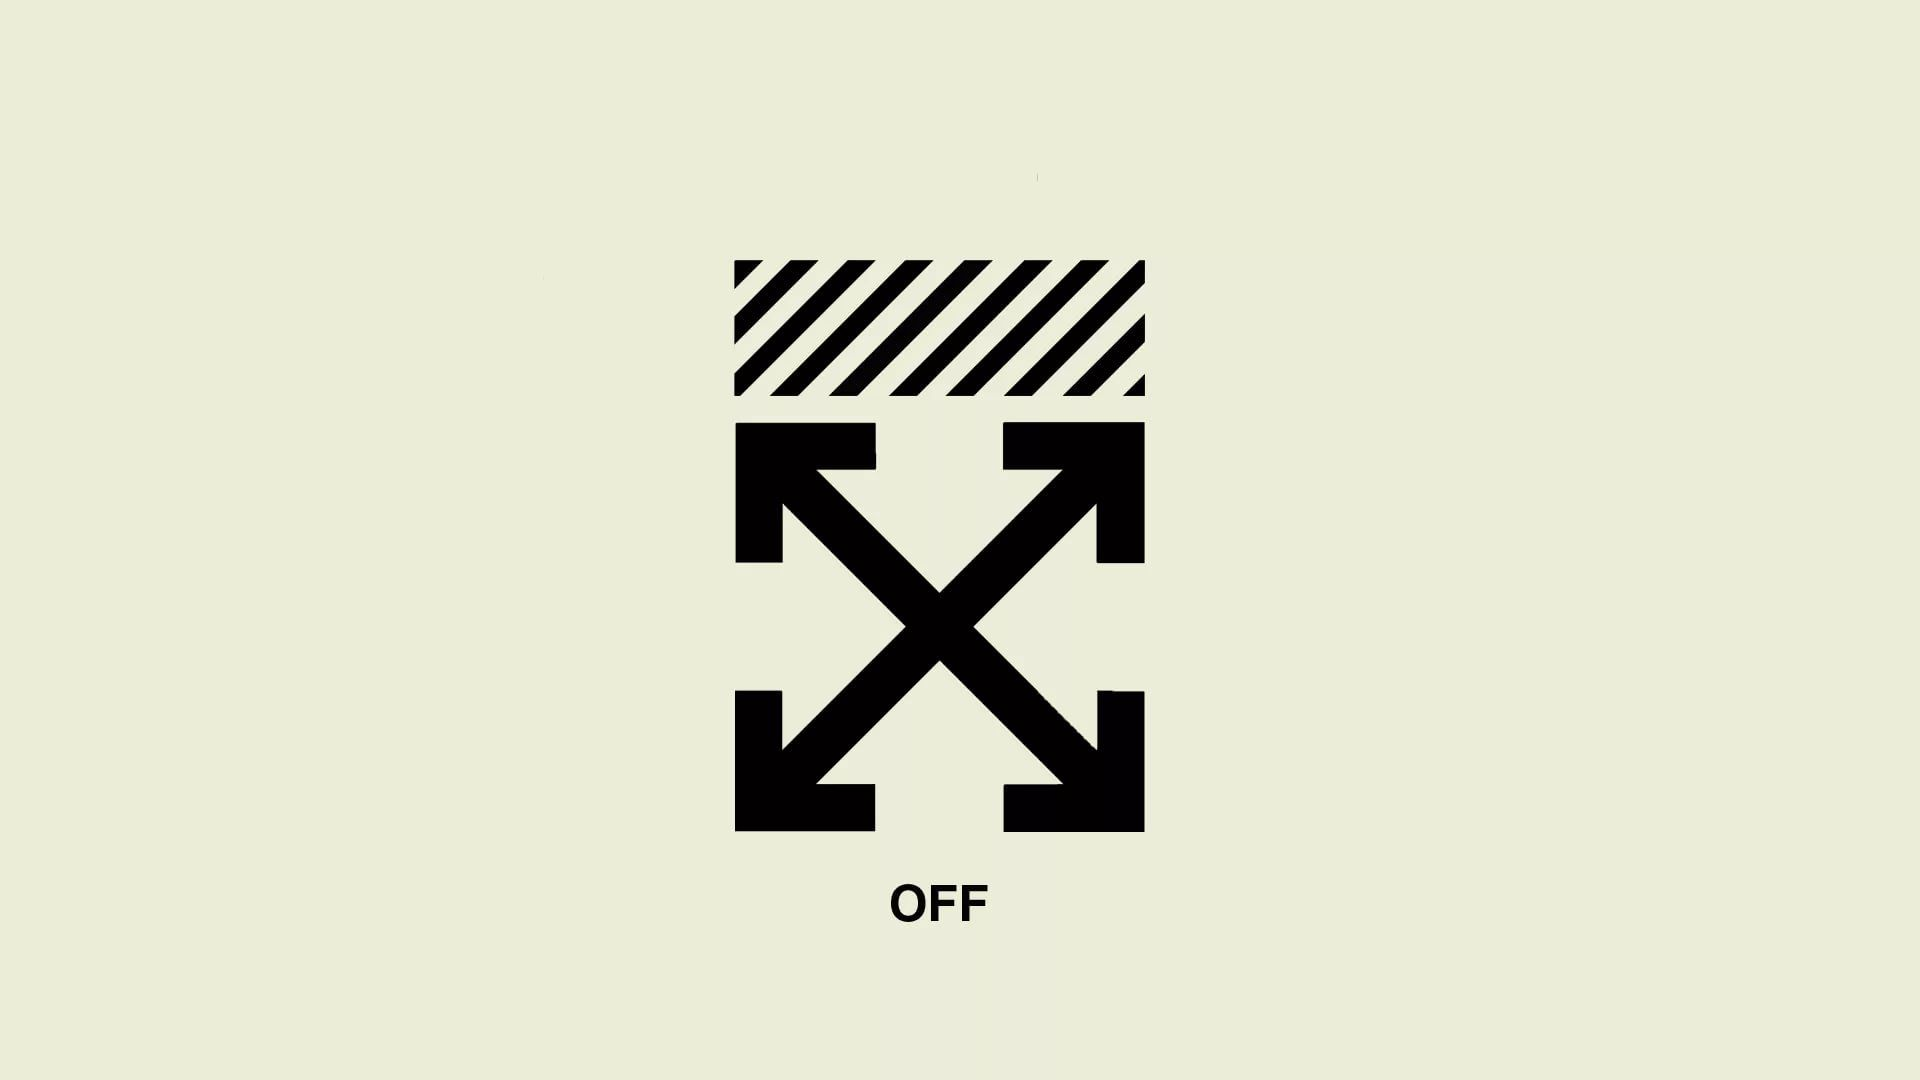 Off White Wallpapers (28+ imágenes) - WallpaperBoat